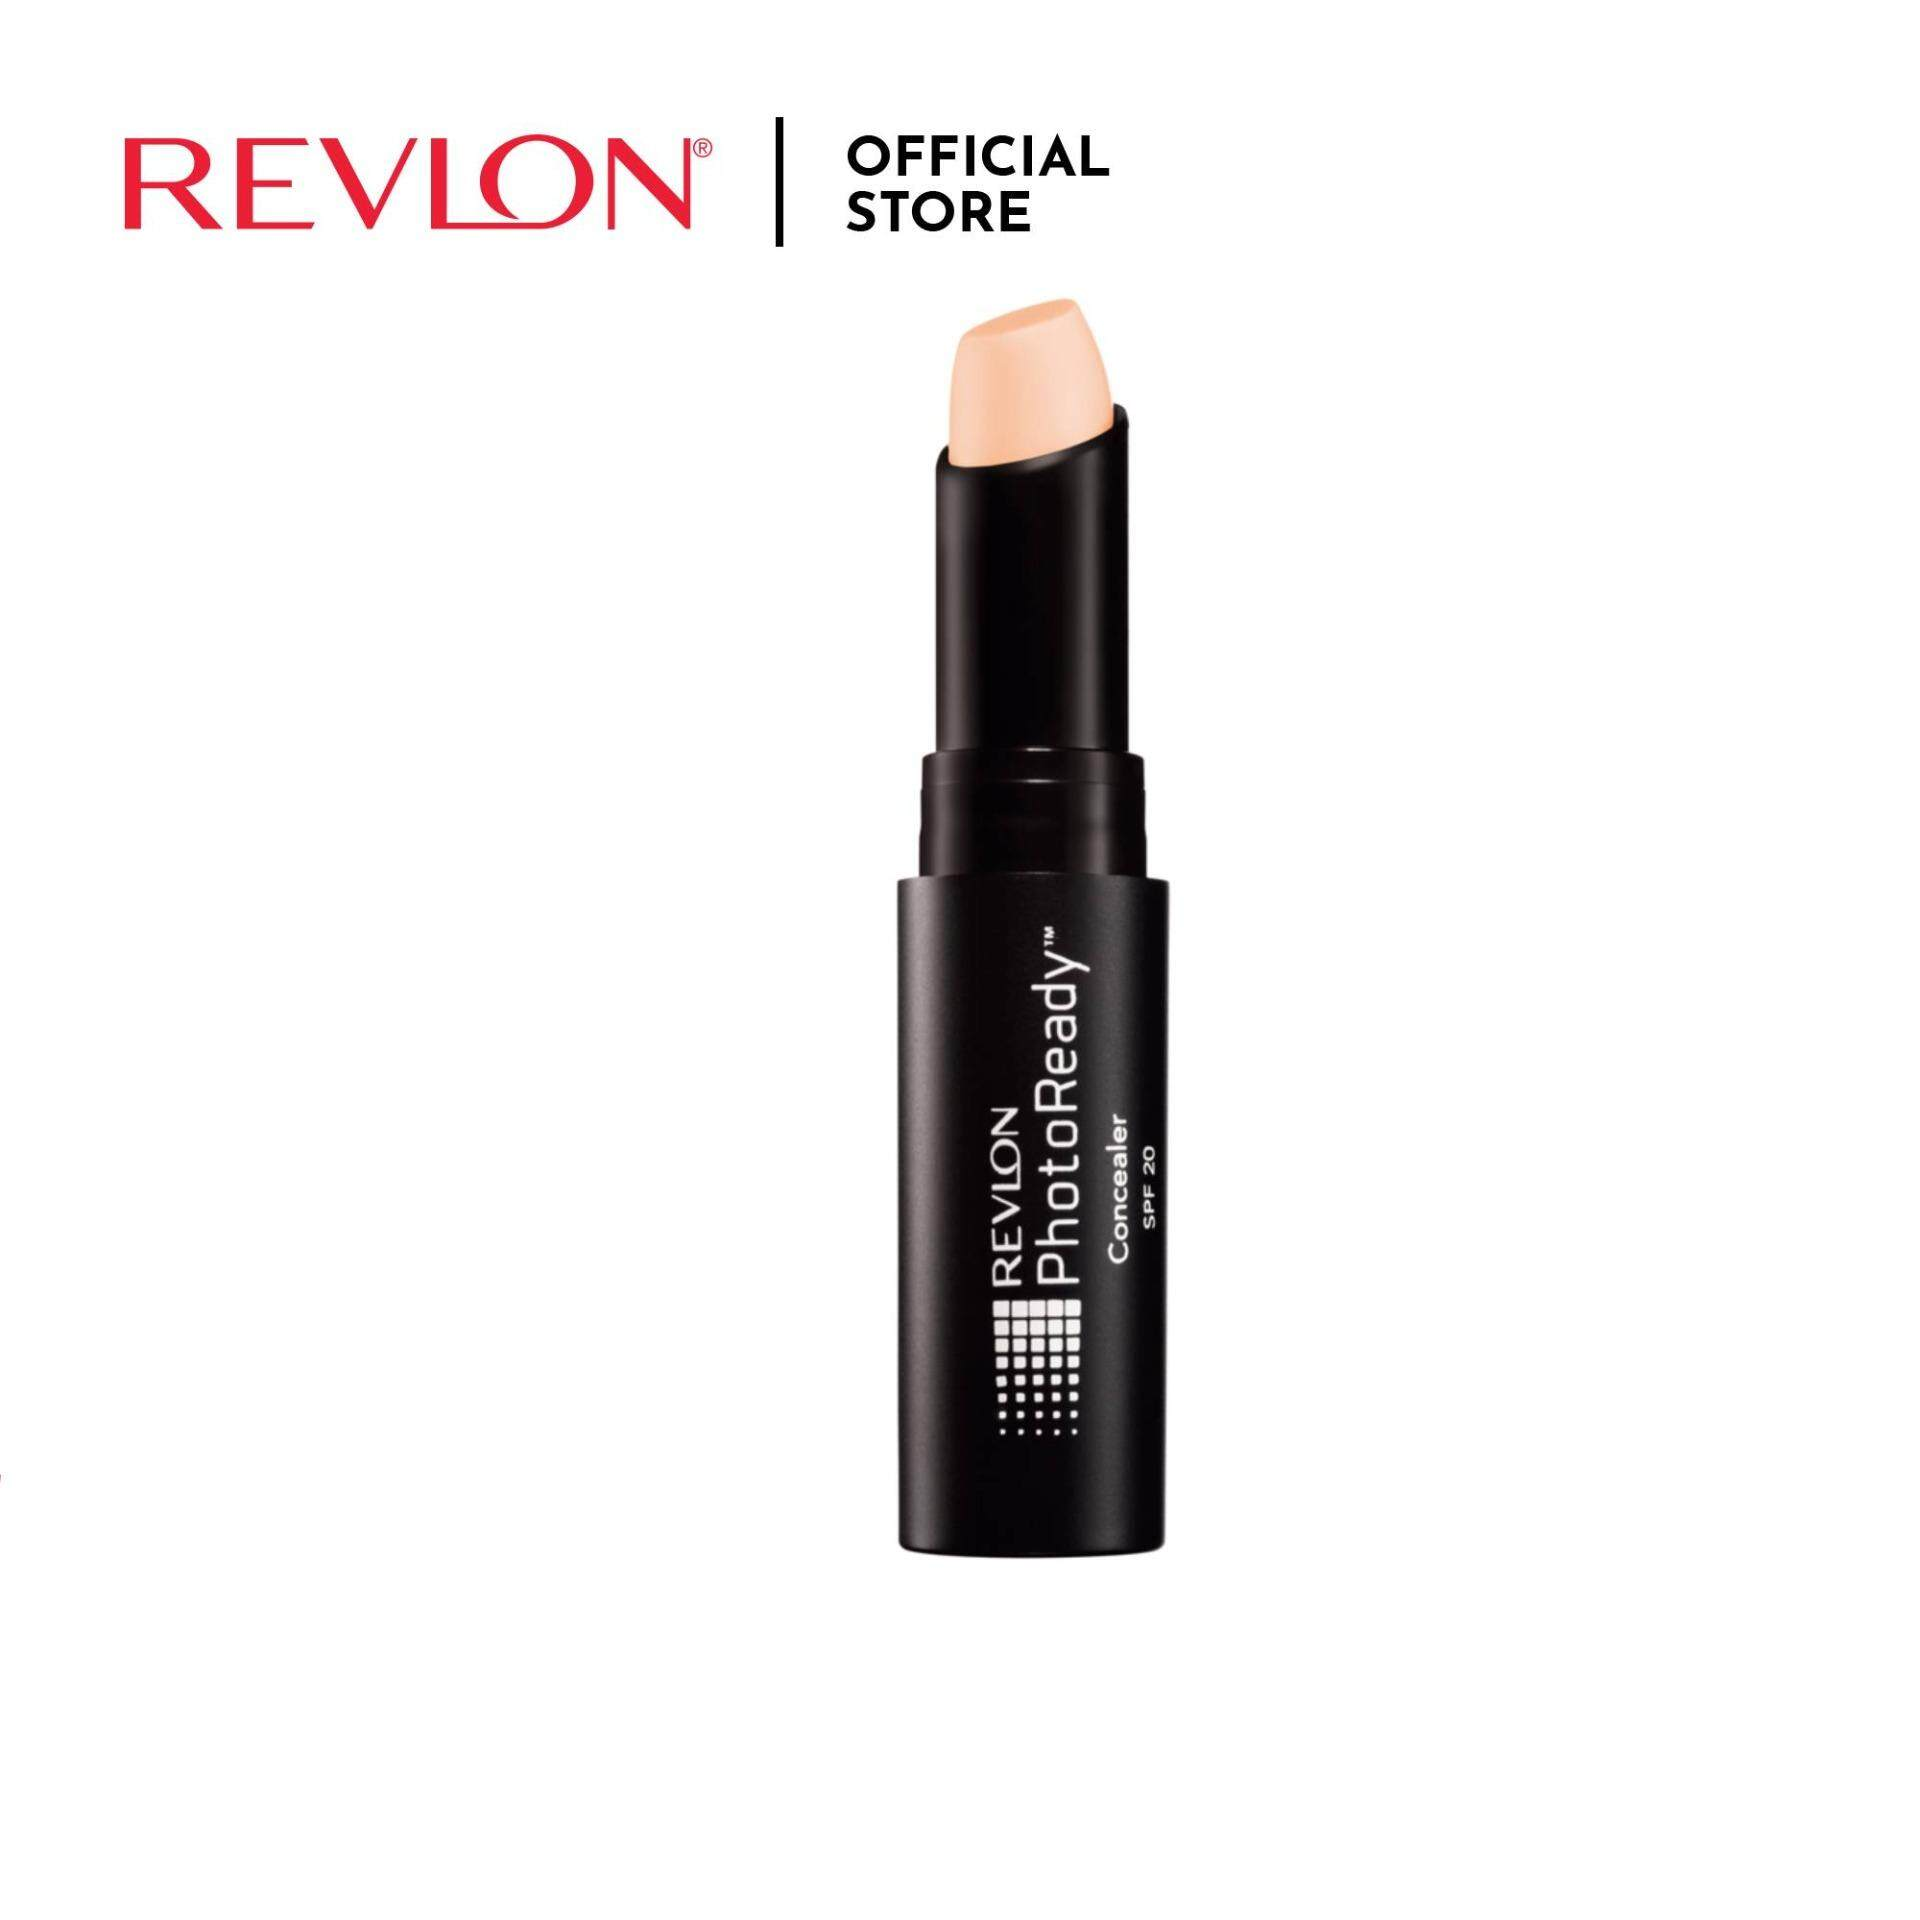 Revlon Photoready Concealer -Medium 004